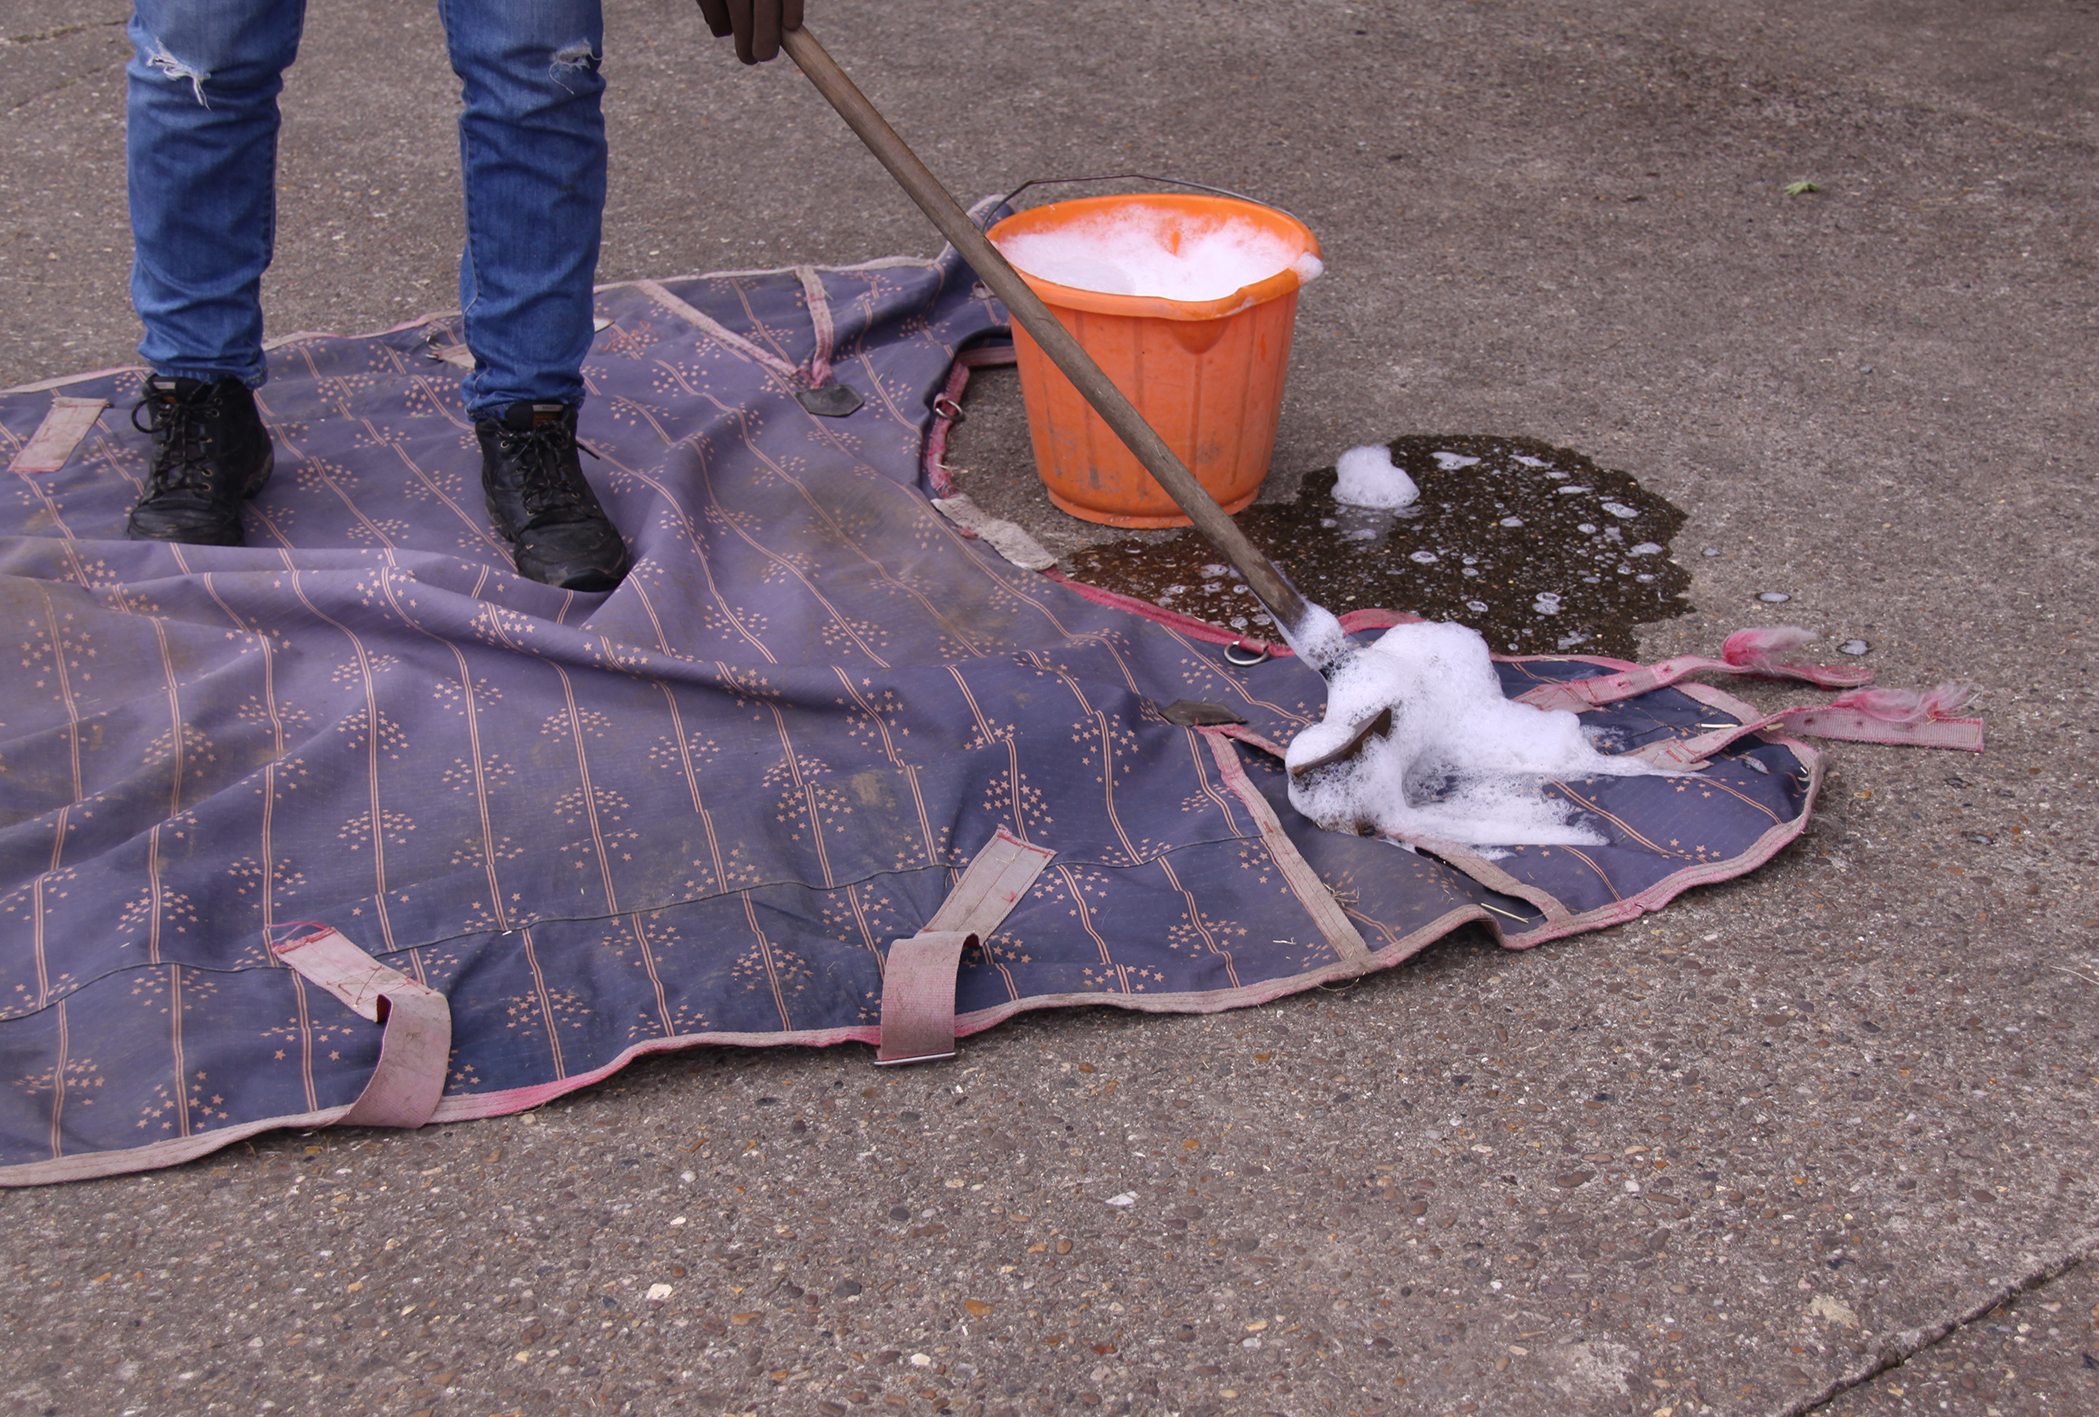 Make sure all rugs are washed and clean